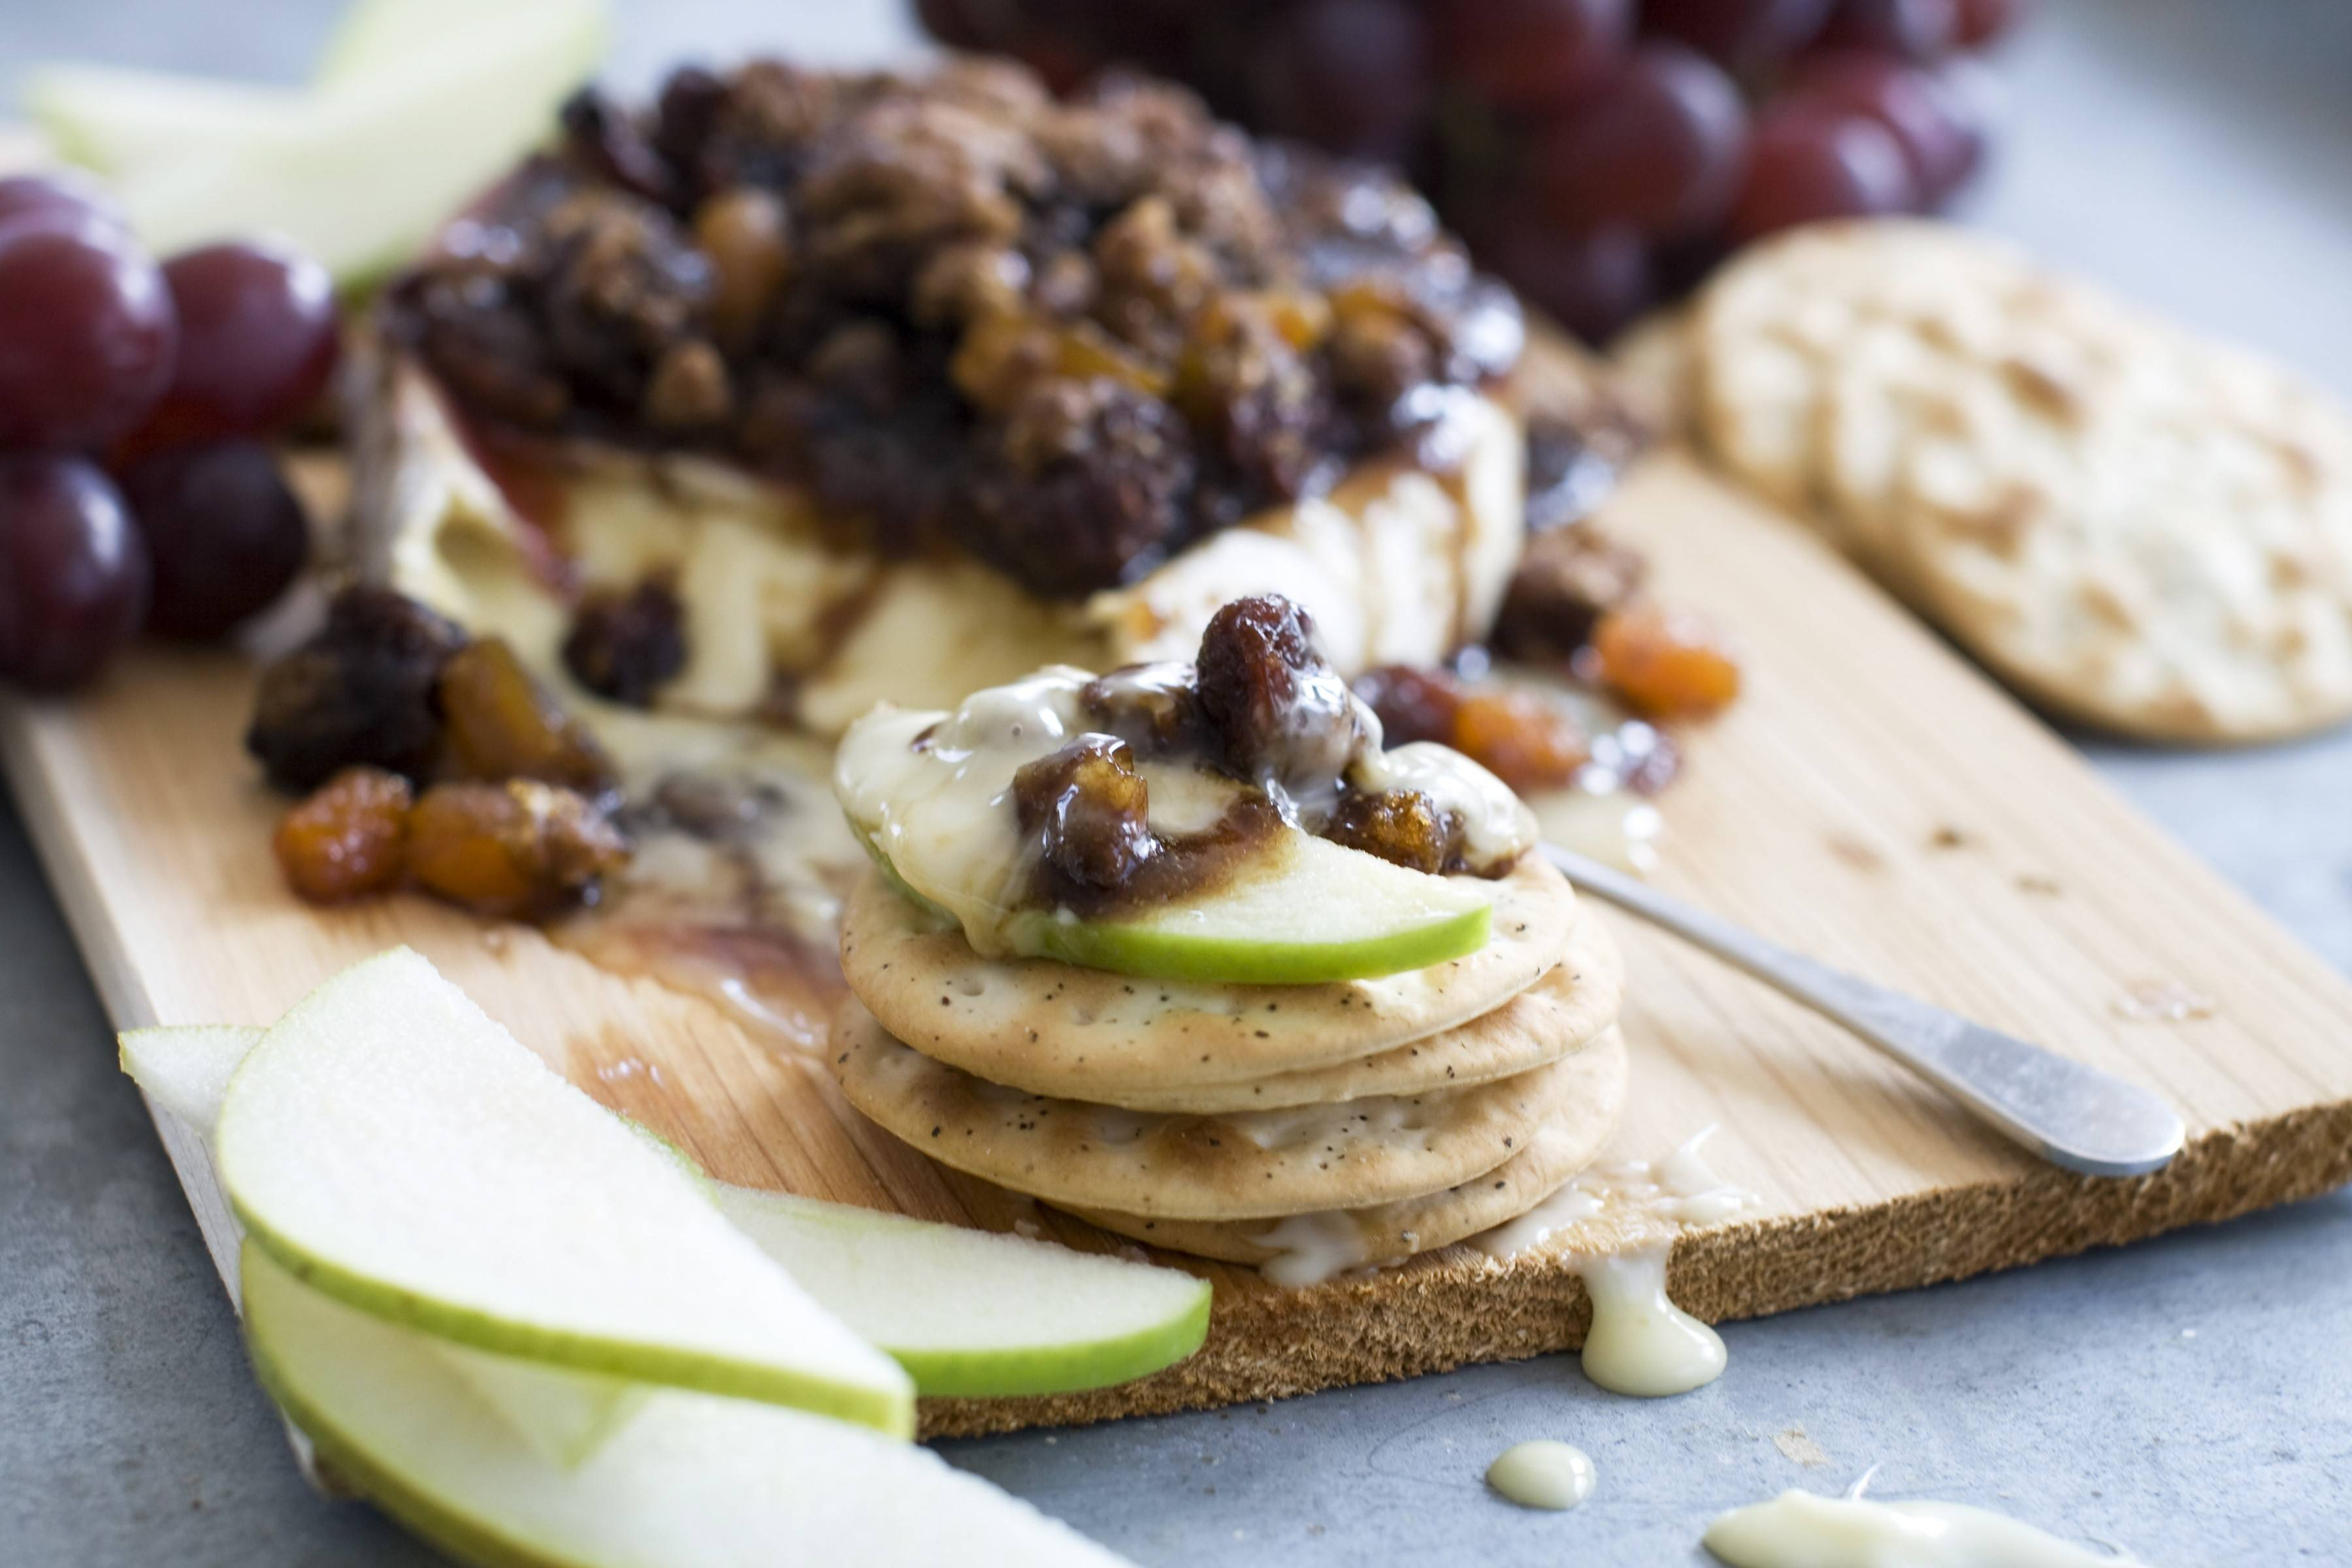 A recipe for cedar-planked pecan, bourbon and brown sugar glazed brie makes an impressive appetizer.